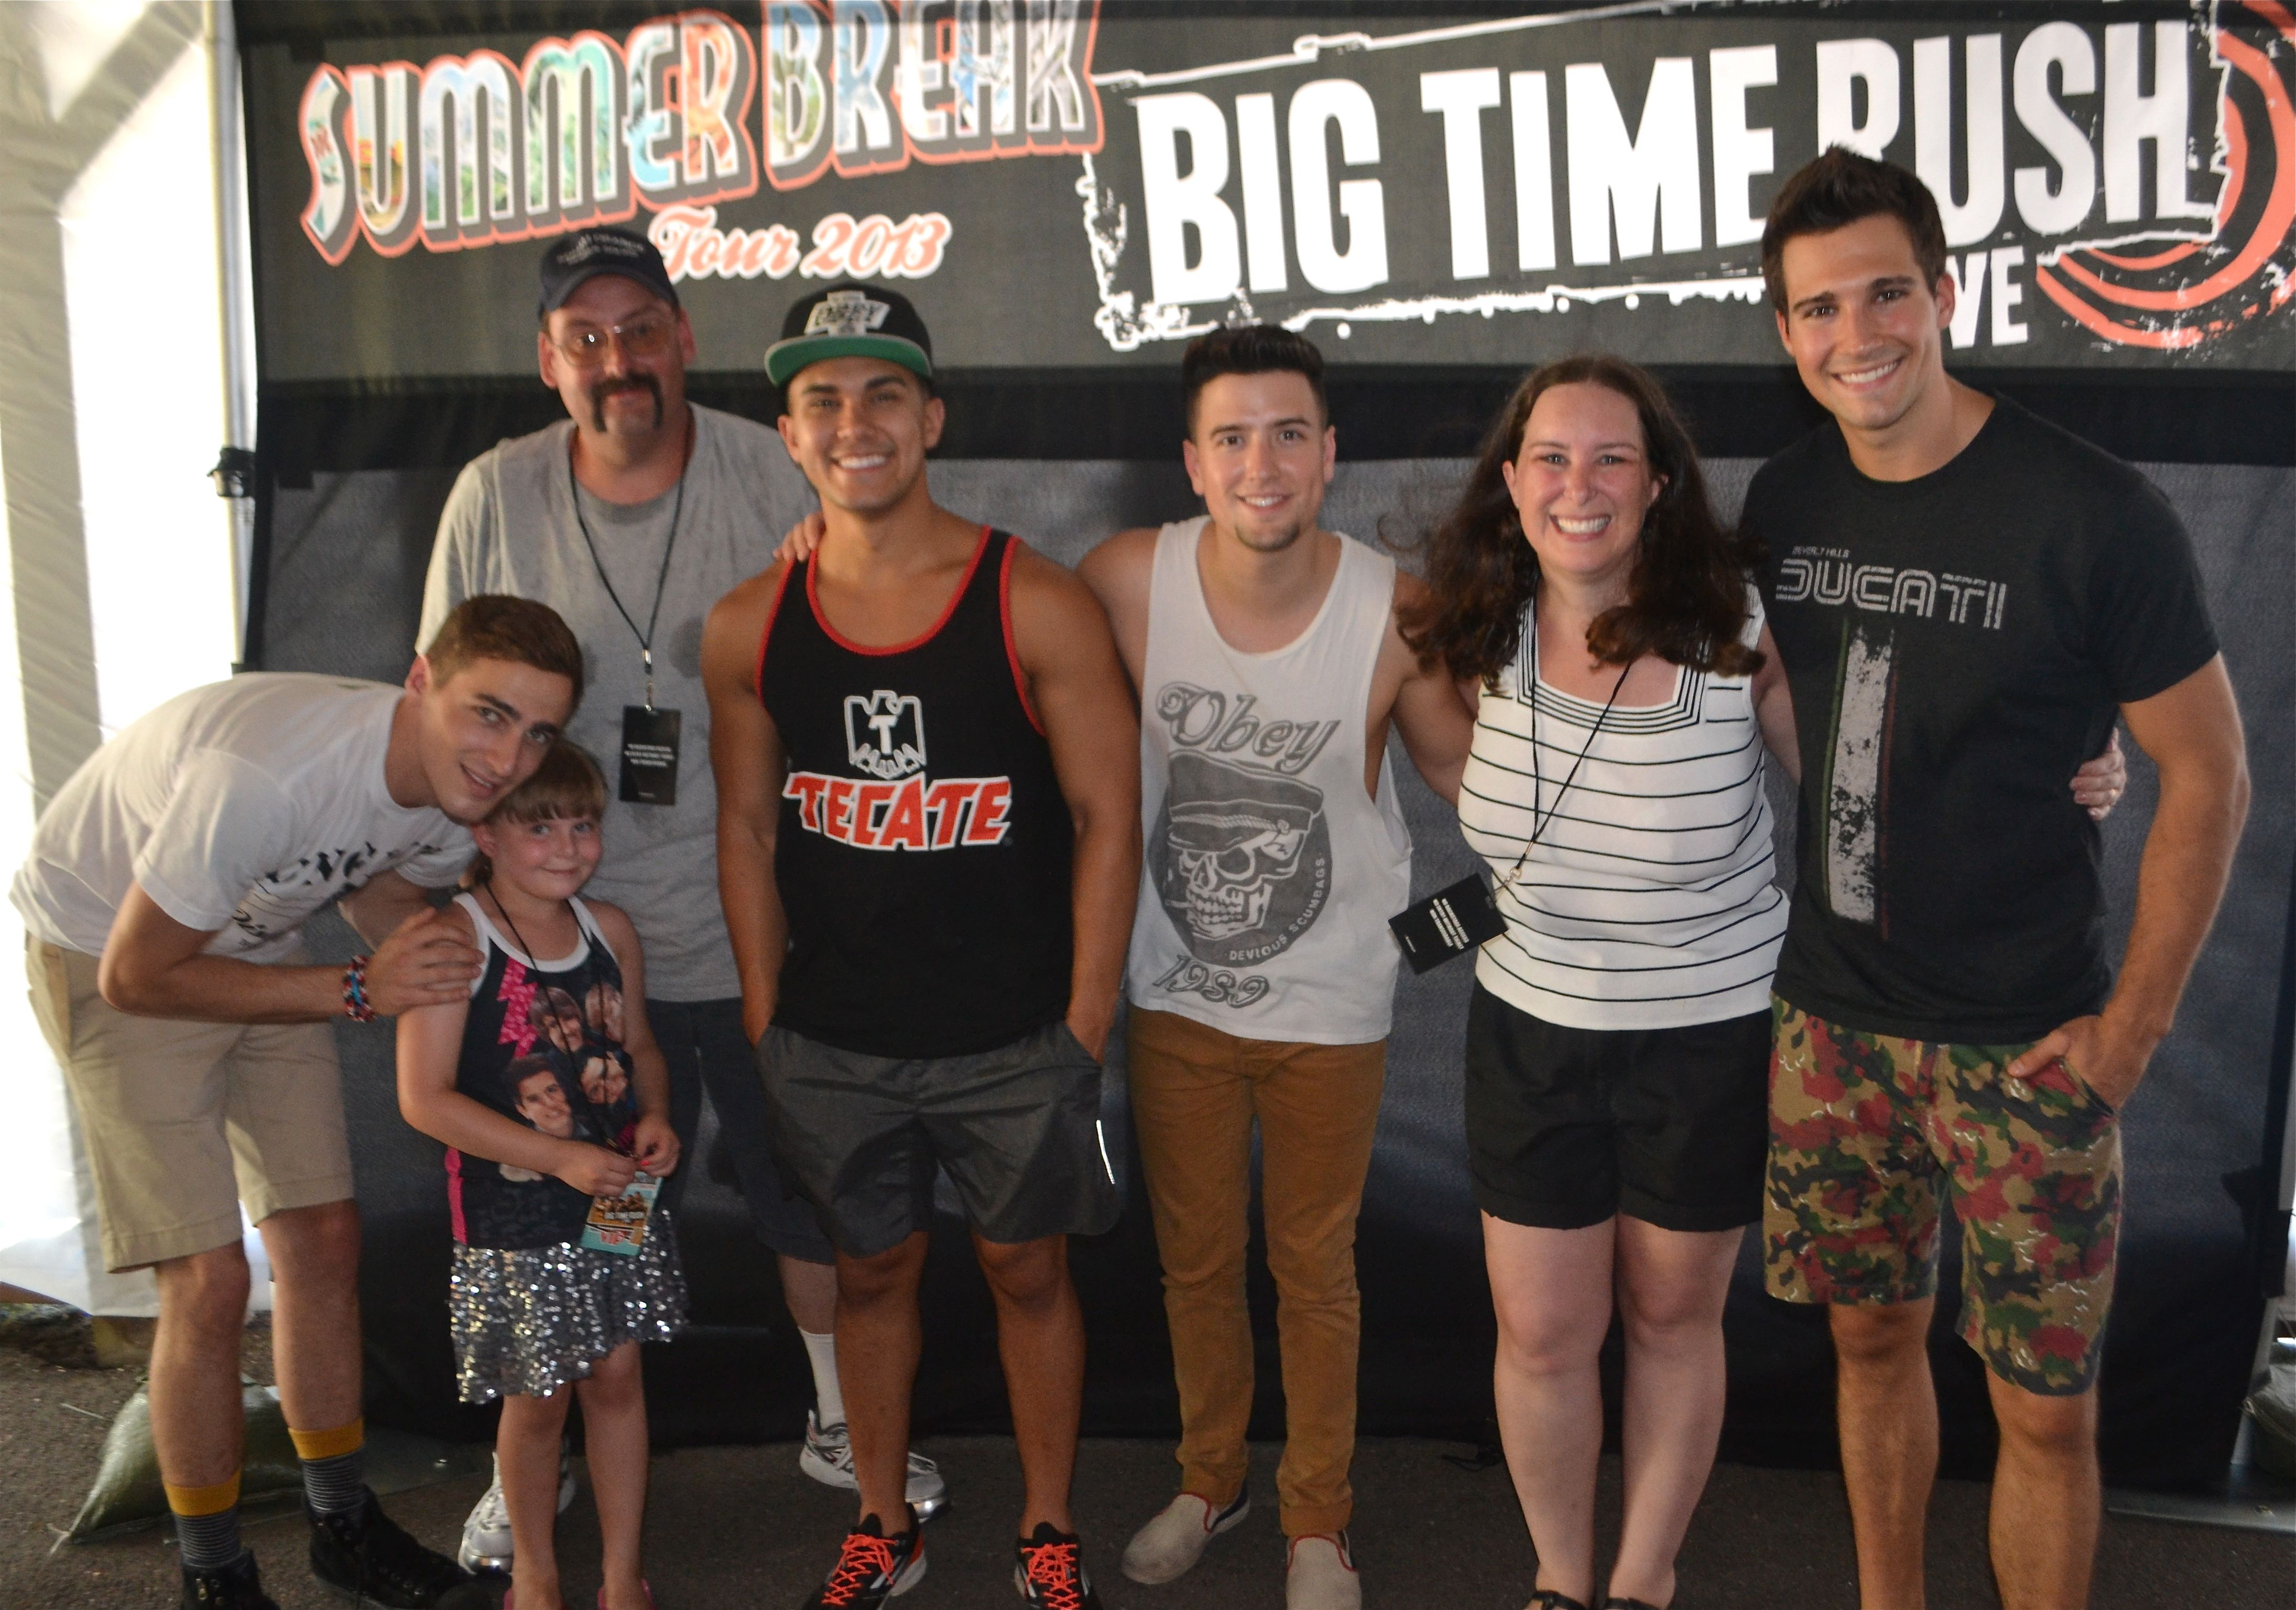 Our vip meet and greet big time rush summer break tour pittsburgh our vip meet and greet m4hsunfo